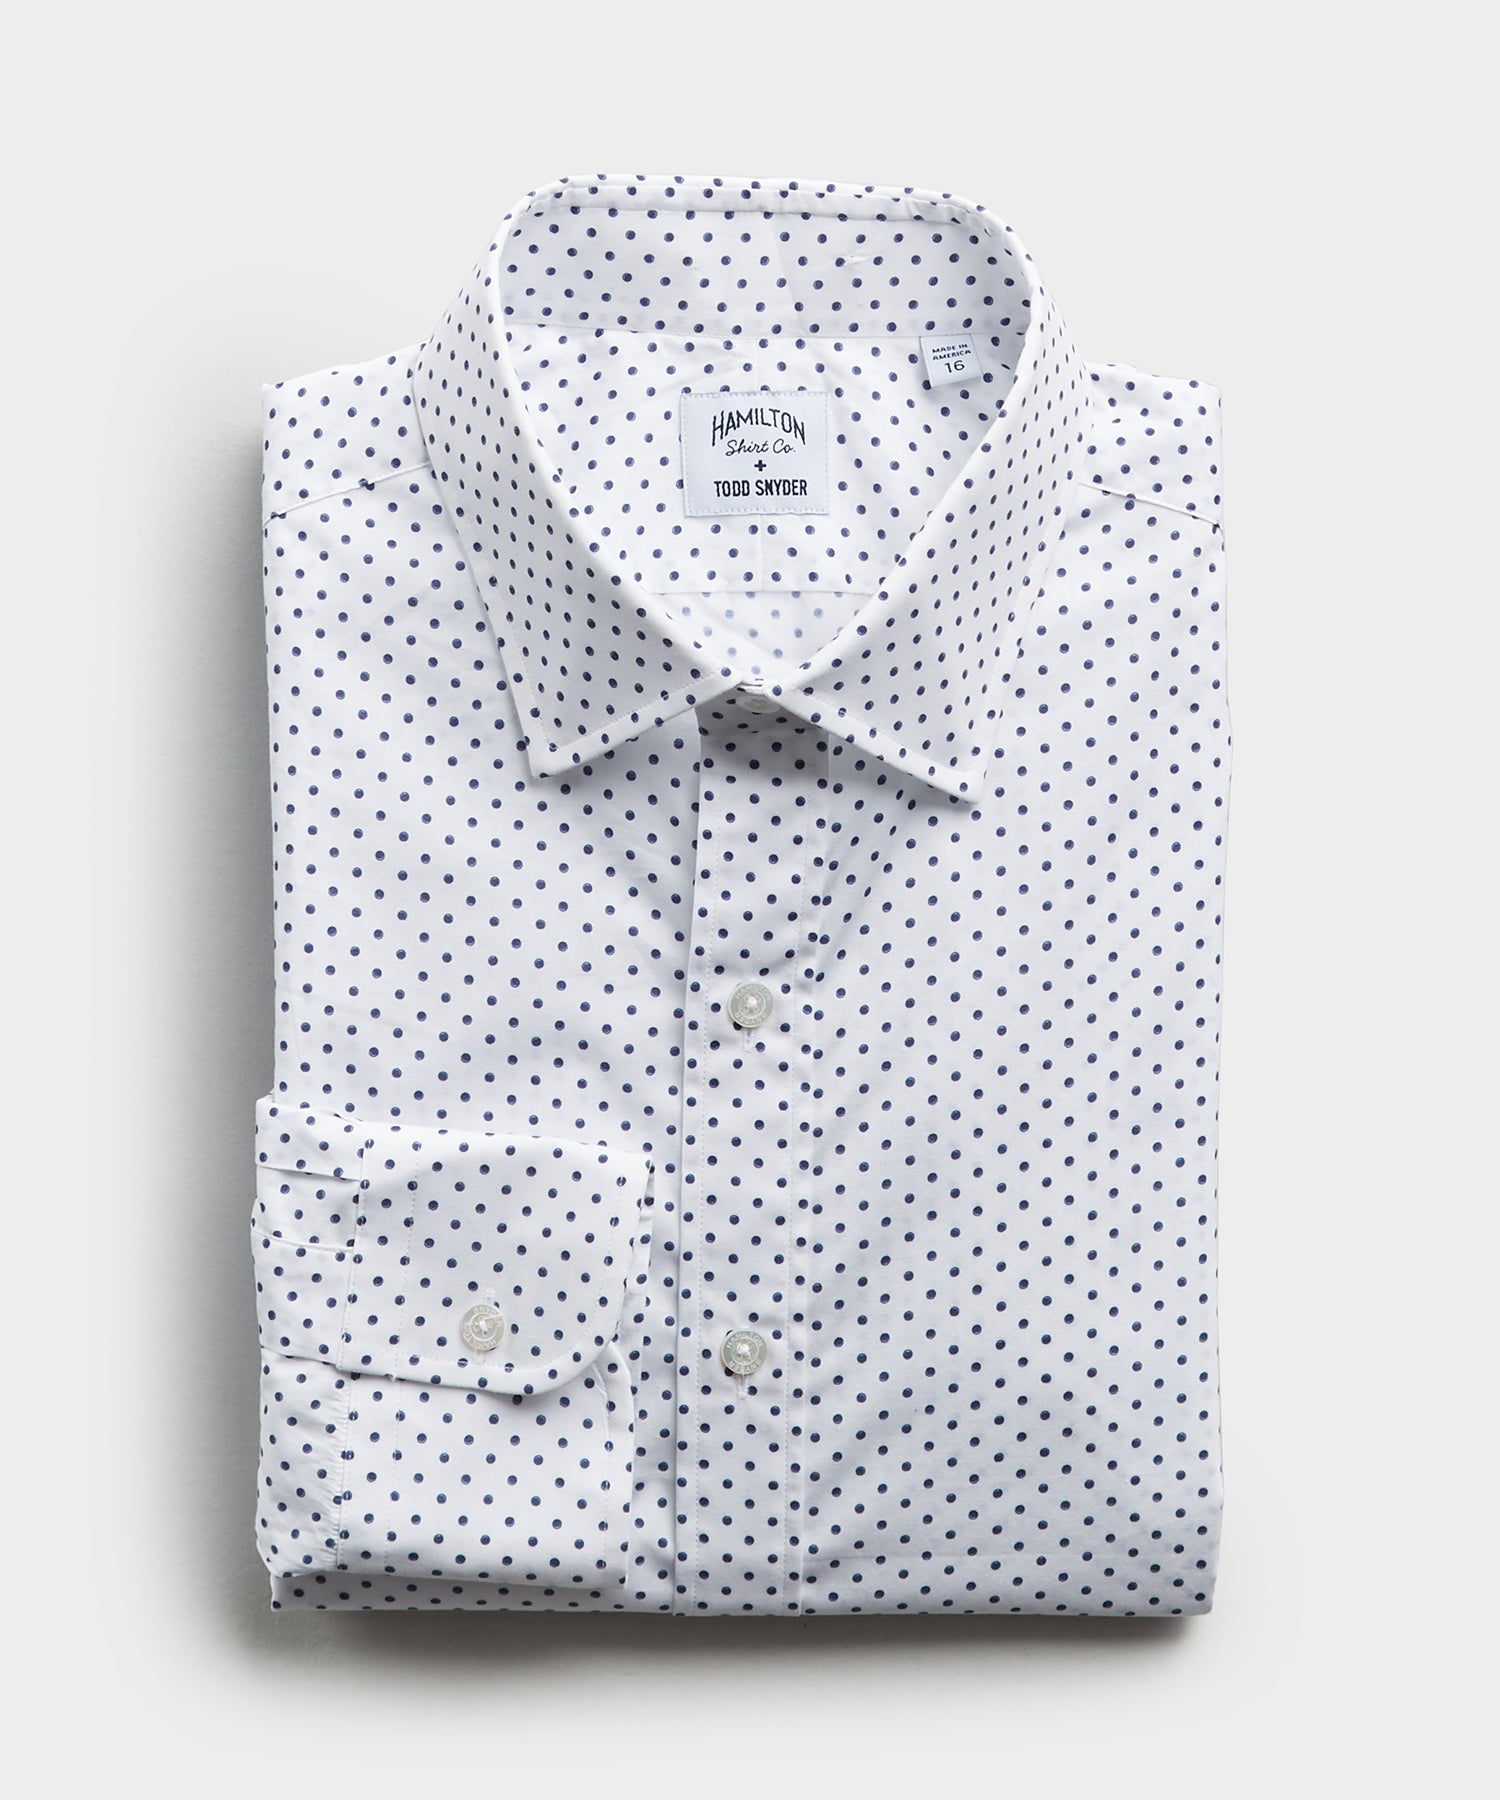 Made in the USA Hamilton + Todd Snyder Polka Dot Dress Shirt